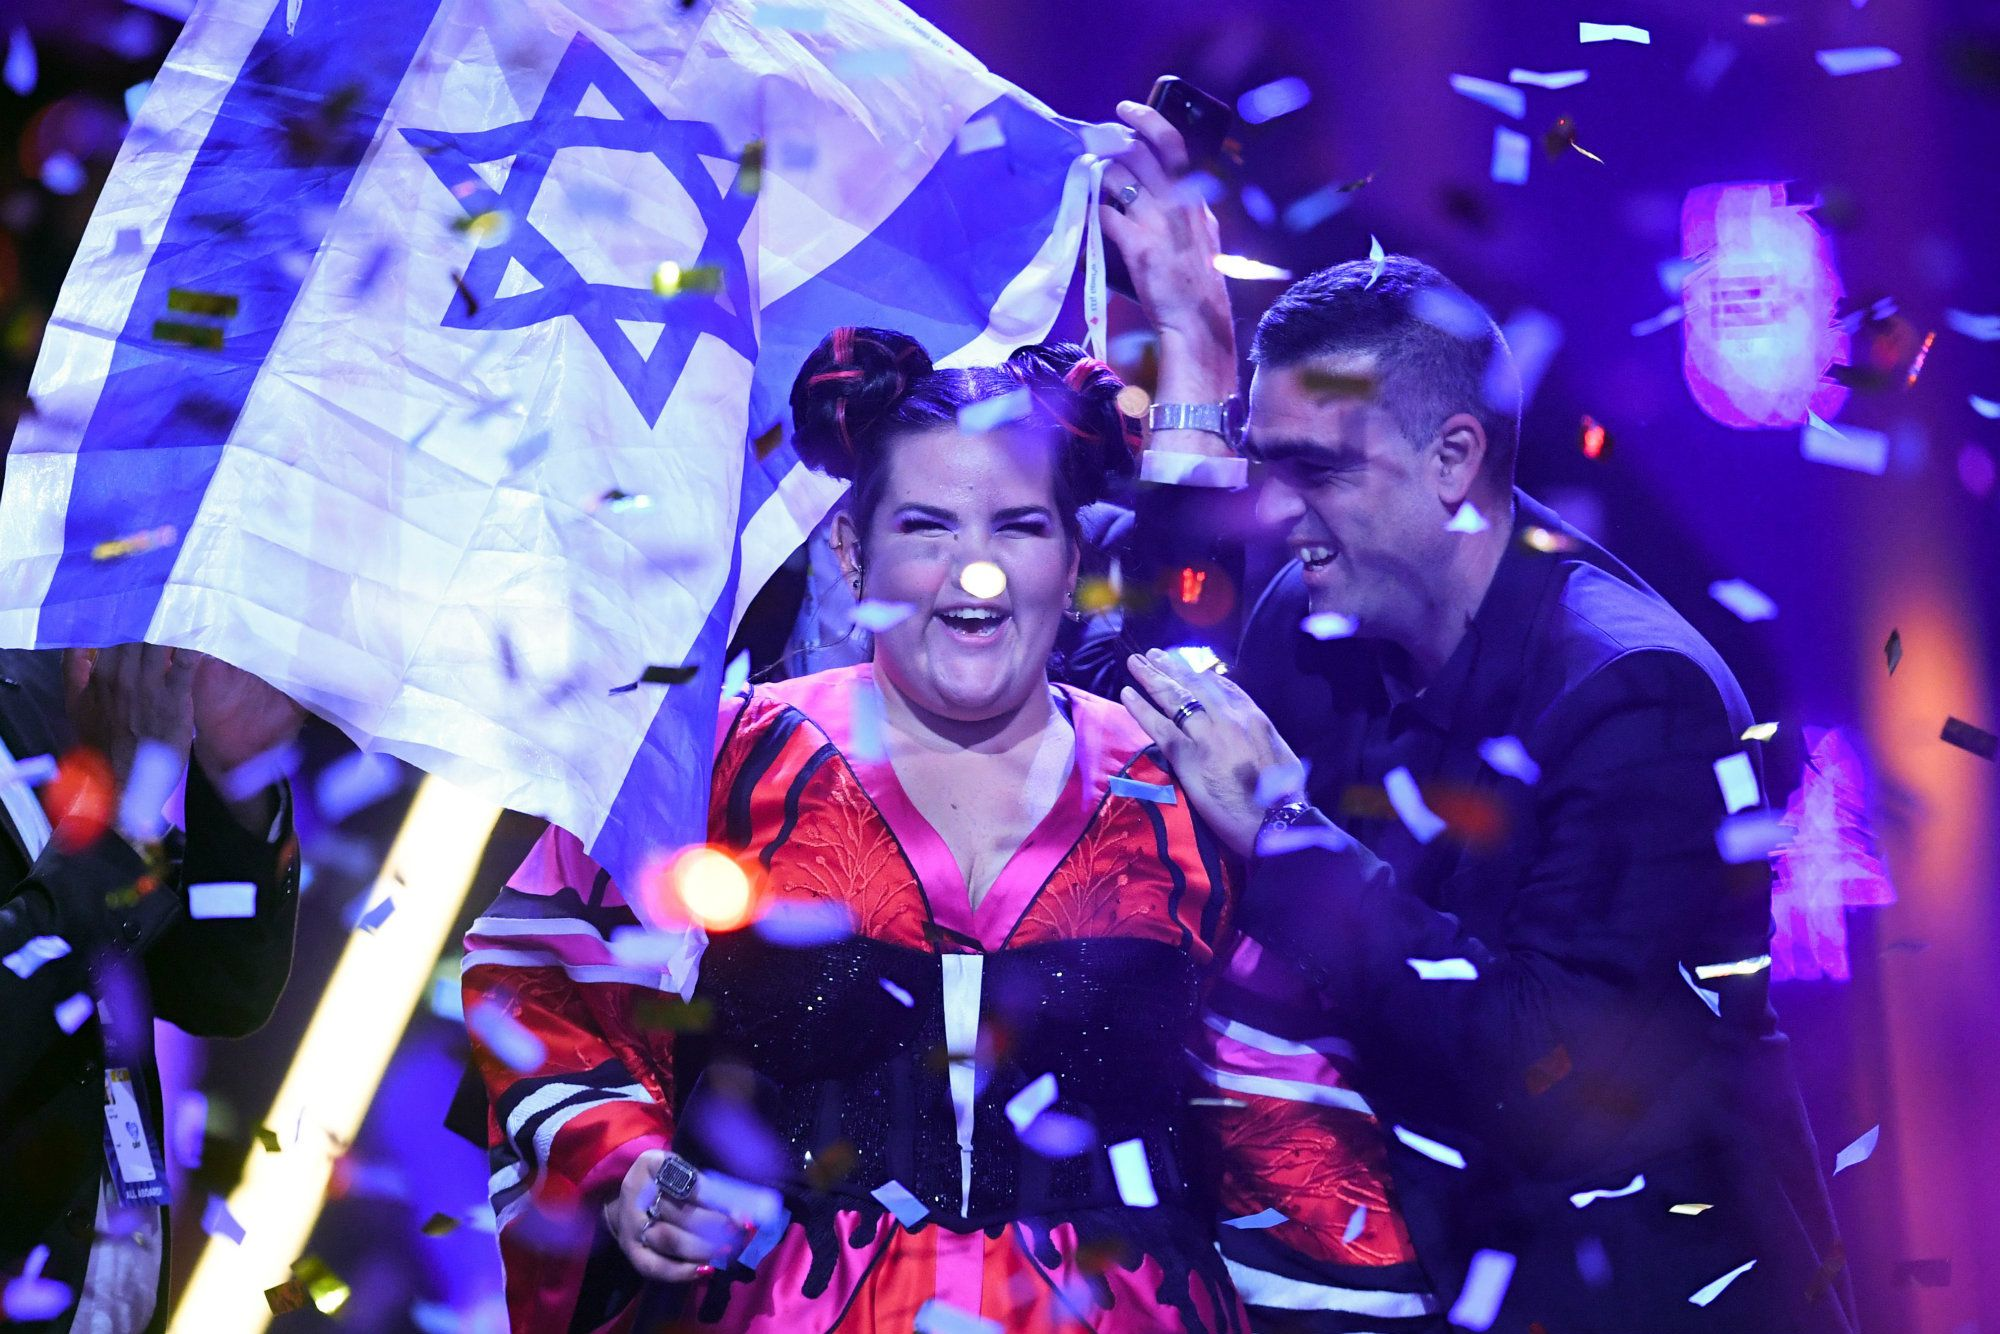 Israel wins the Eurovision Song Contest 2018 with Netta's bonkers song 'Toy'